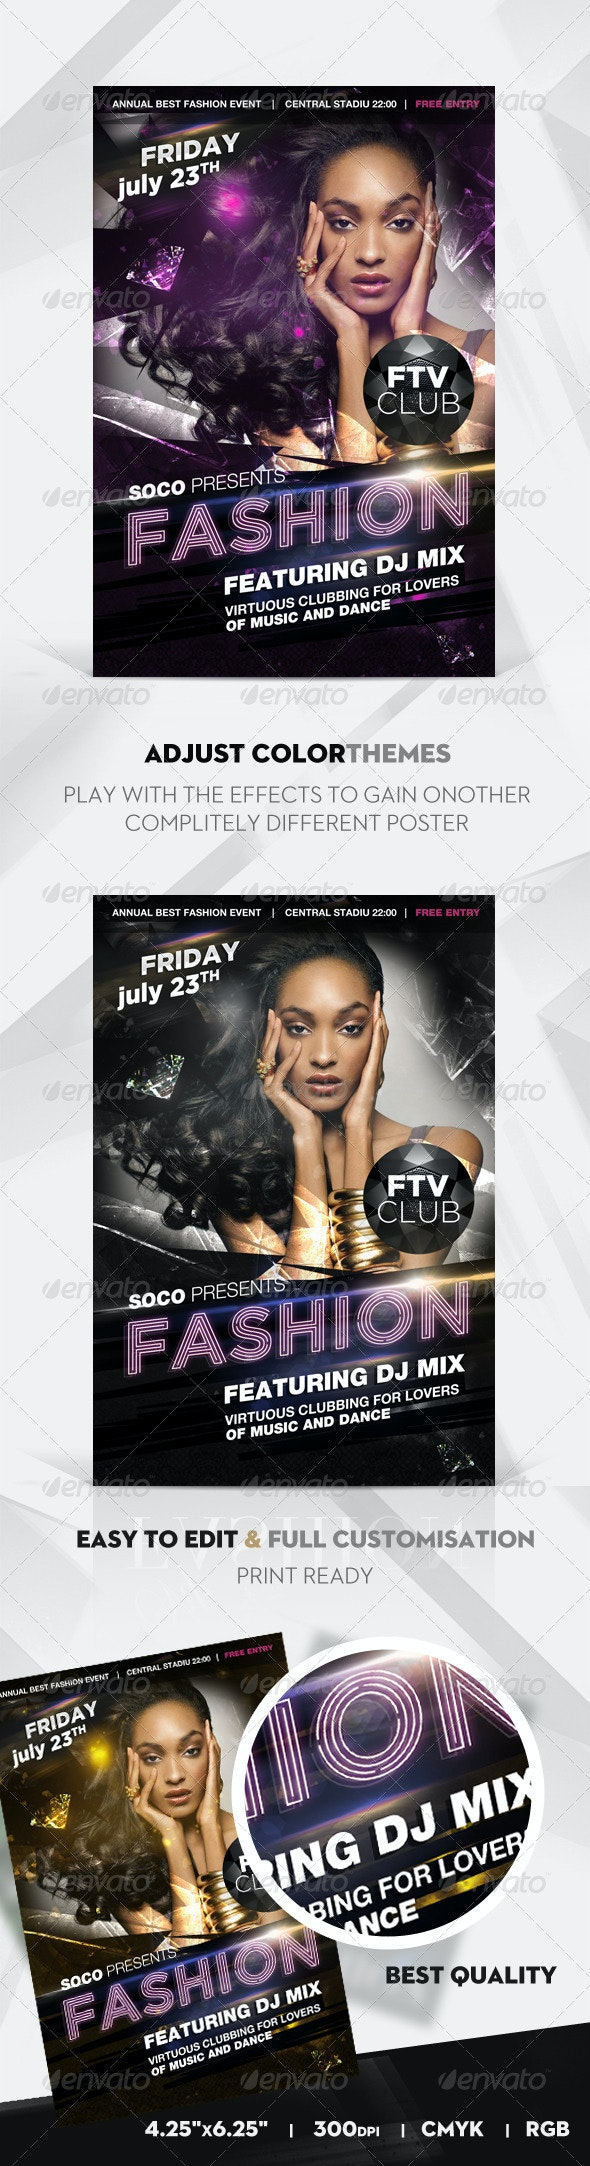 VIP Fashion Party Flyer - Events Flyers